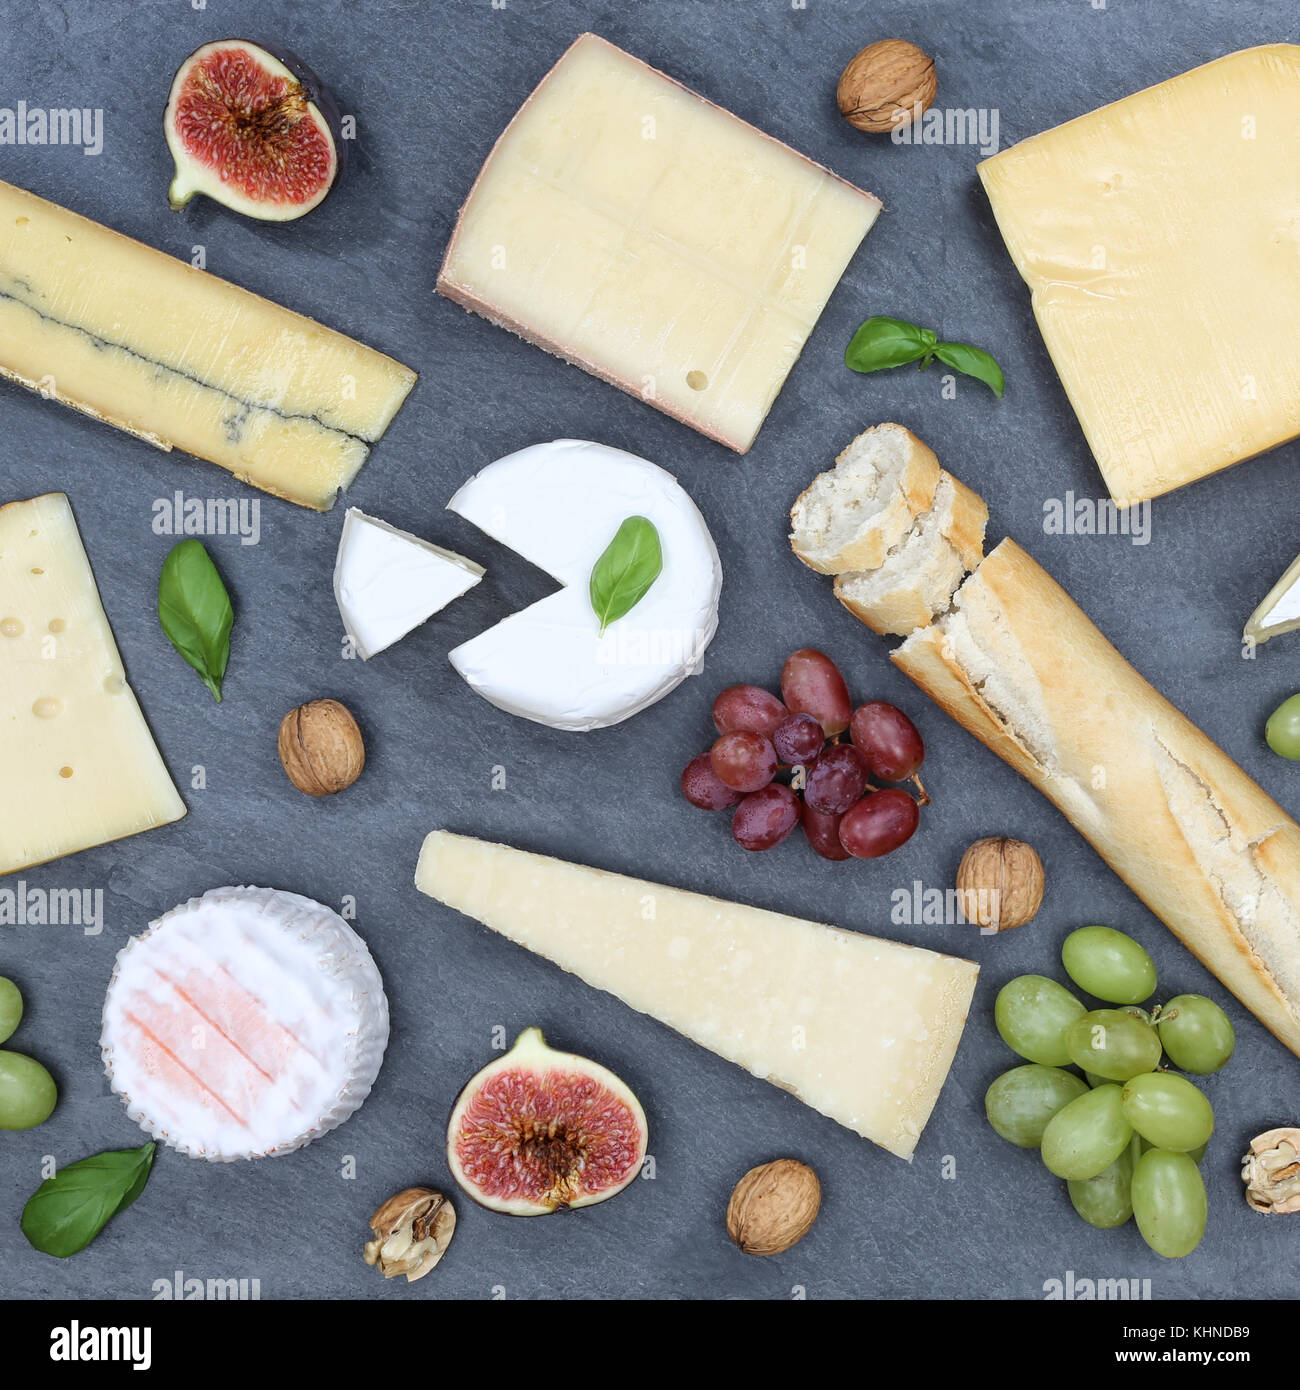 Cheese board platter plate Swiss bread Camembert square slate top view from above - Stock Image